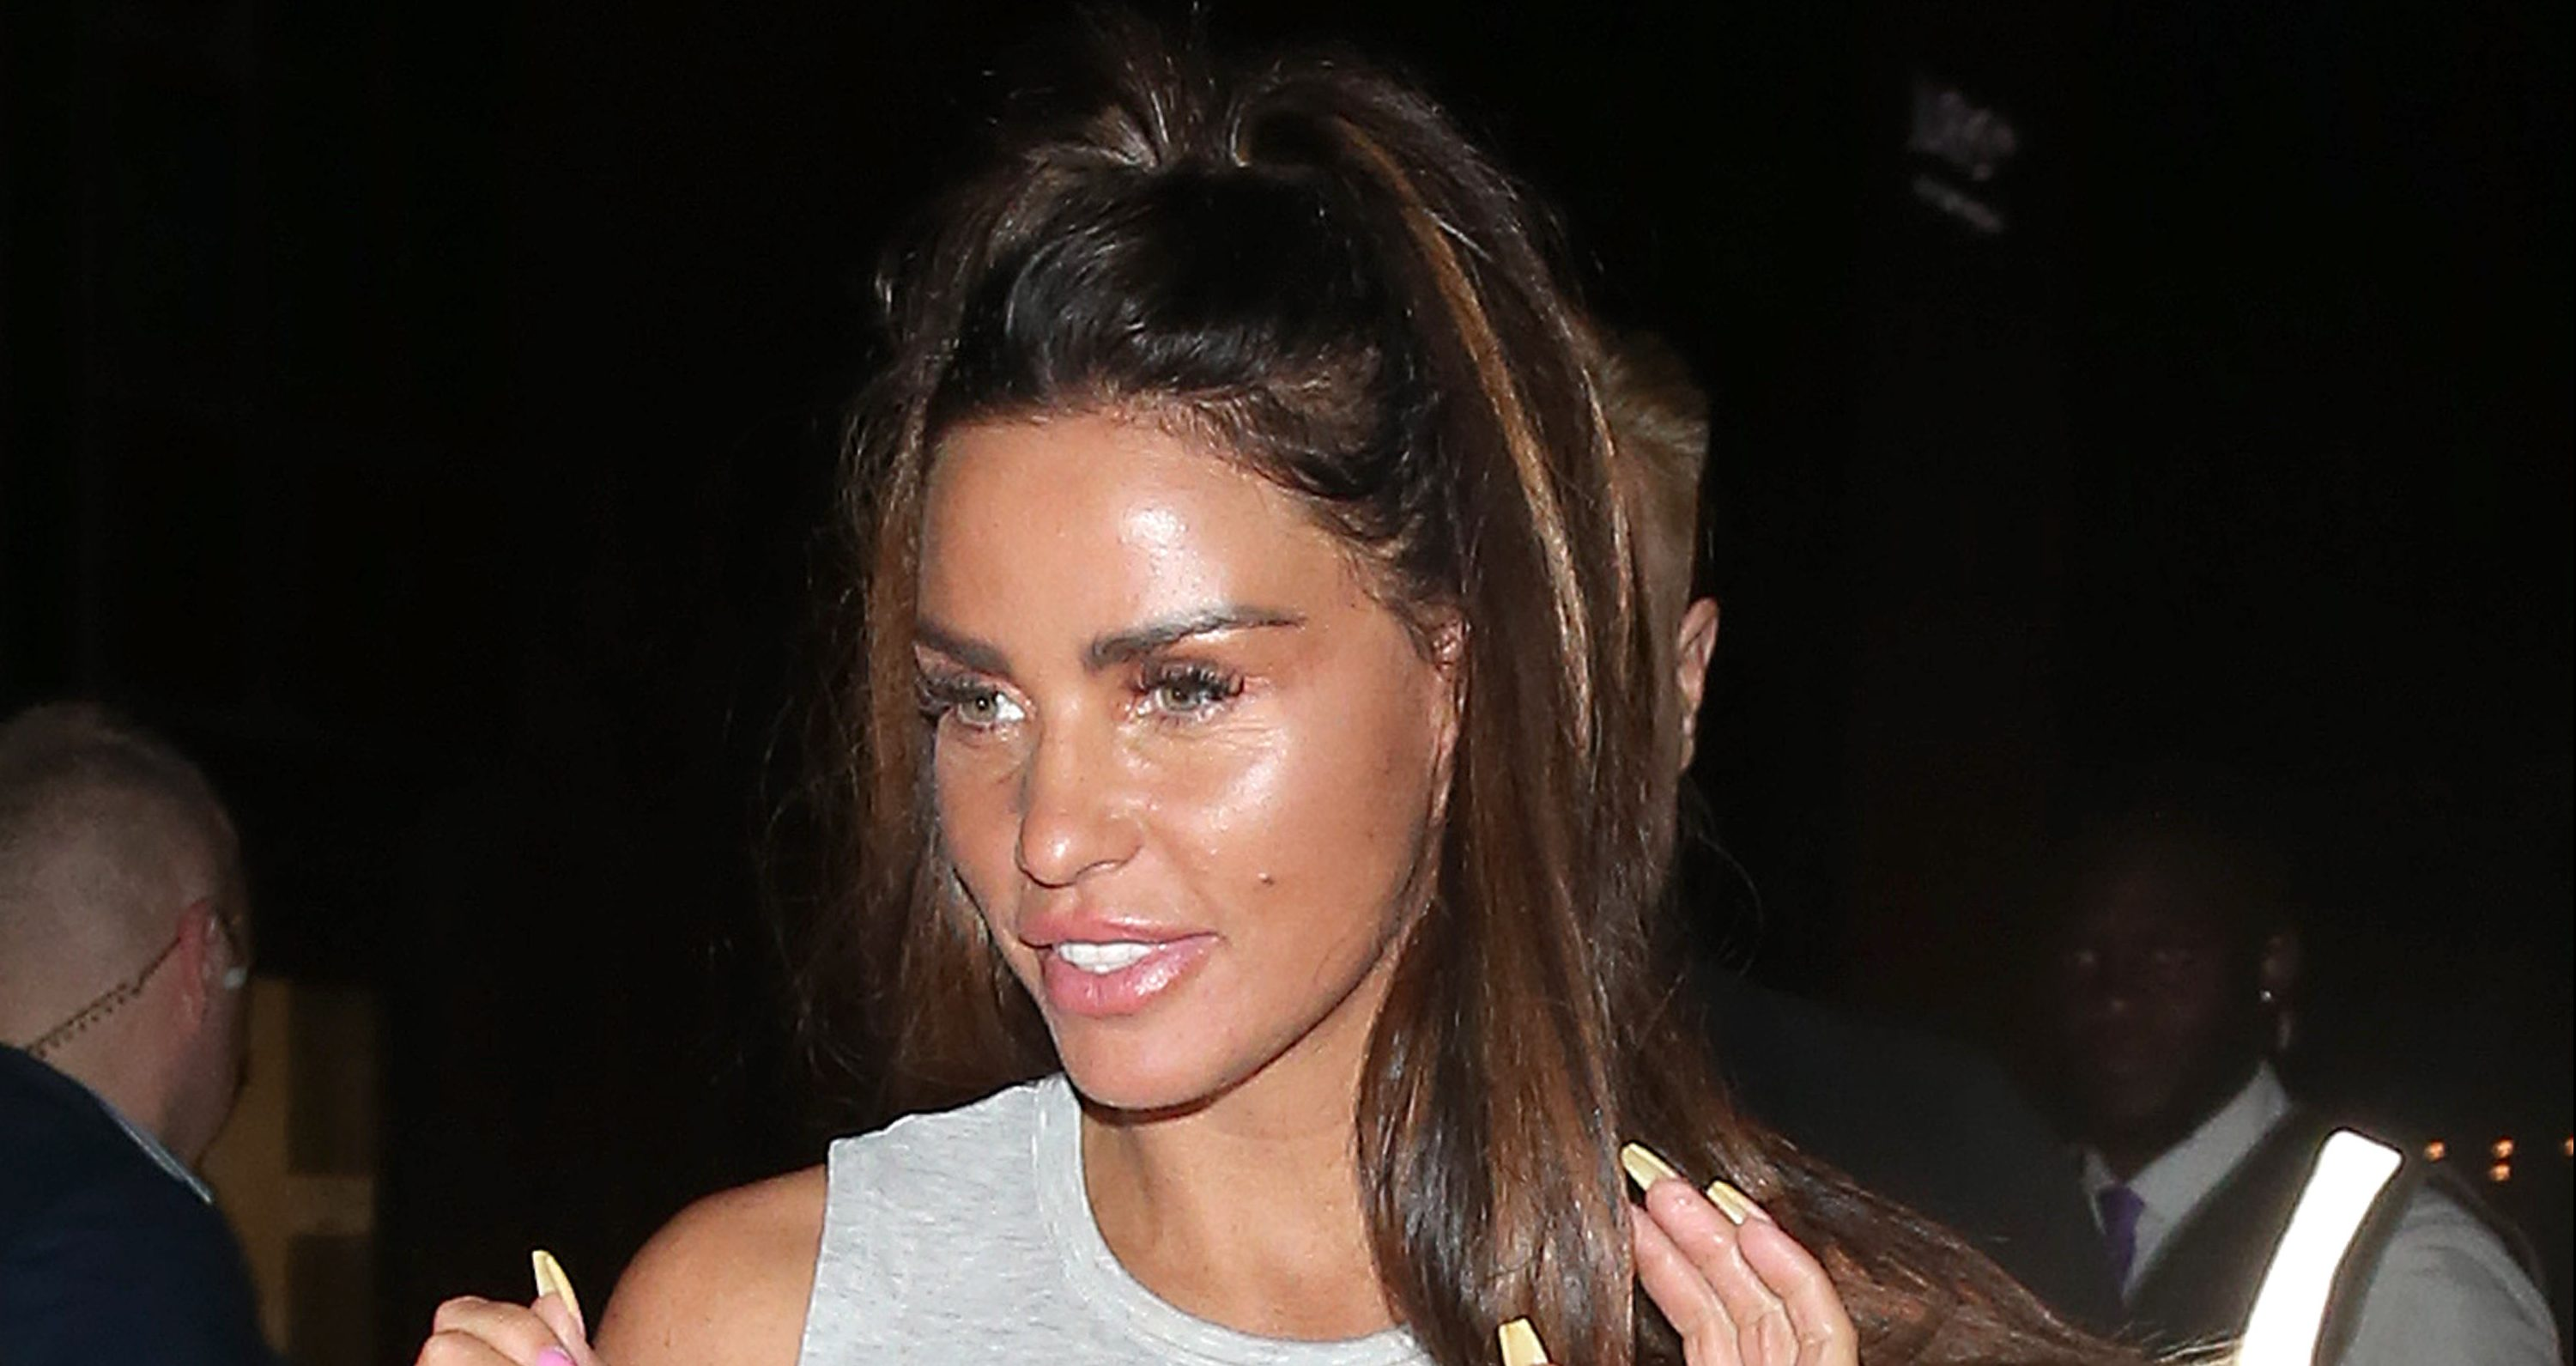 Katie Price reveals new series will focus on Kris split and rebuilding mucky mansion